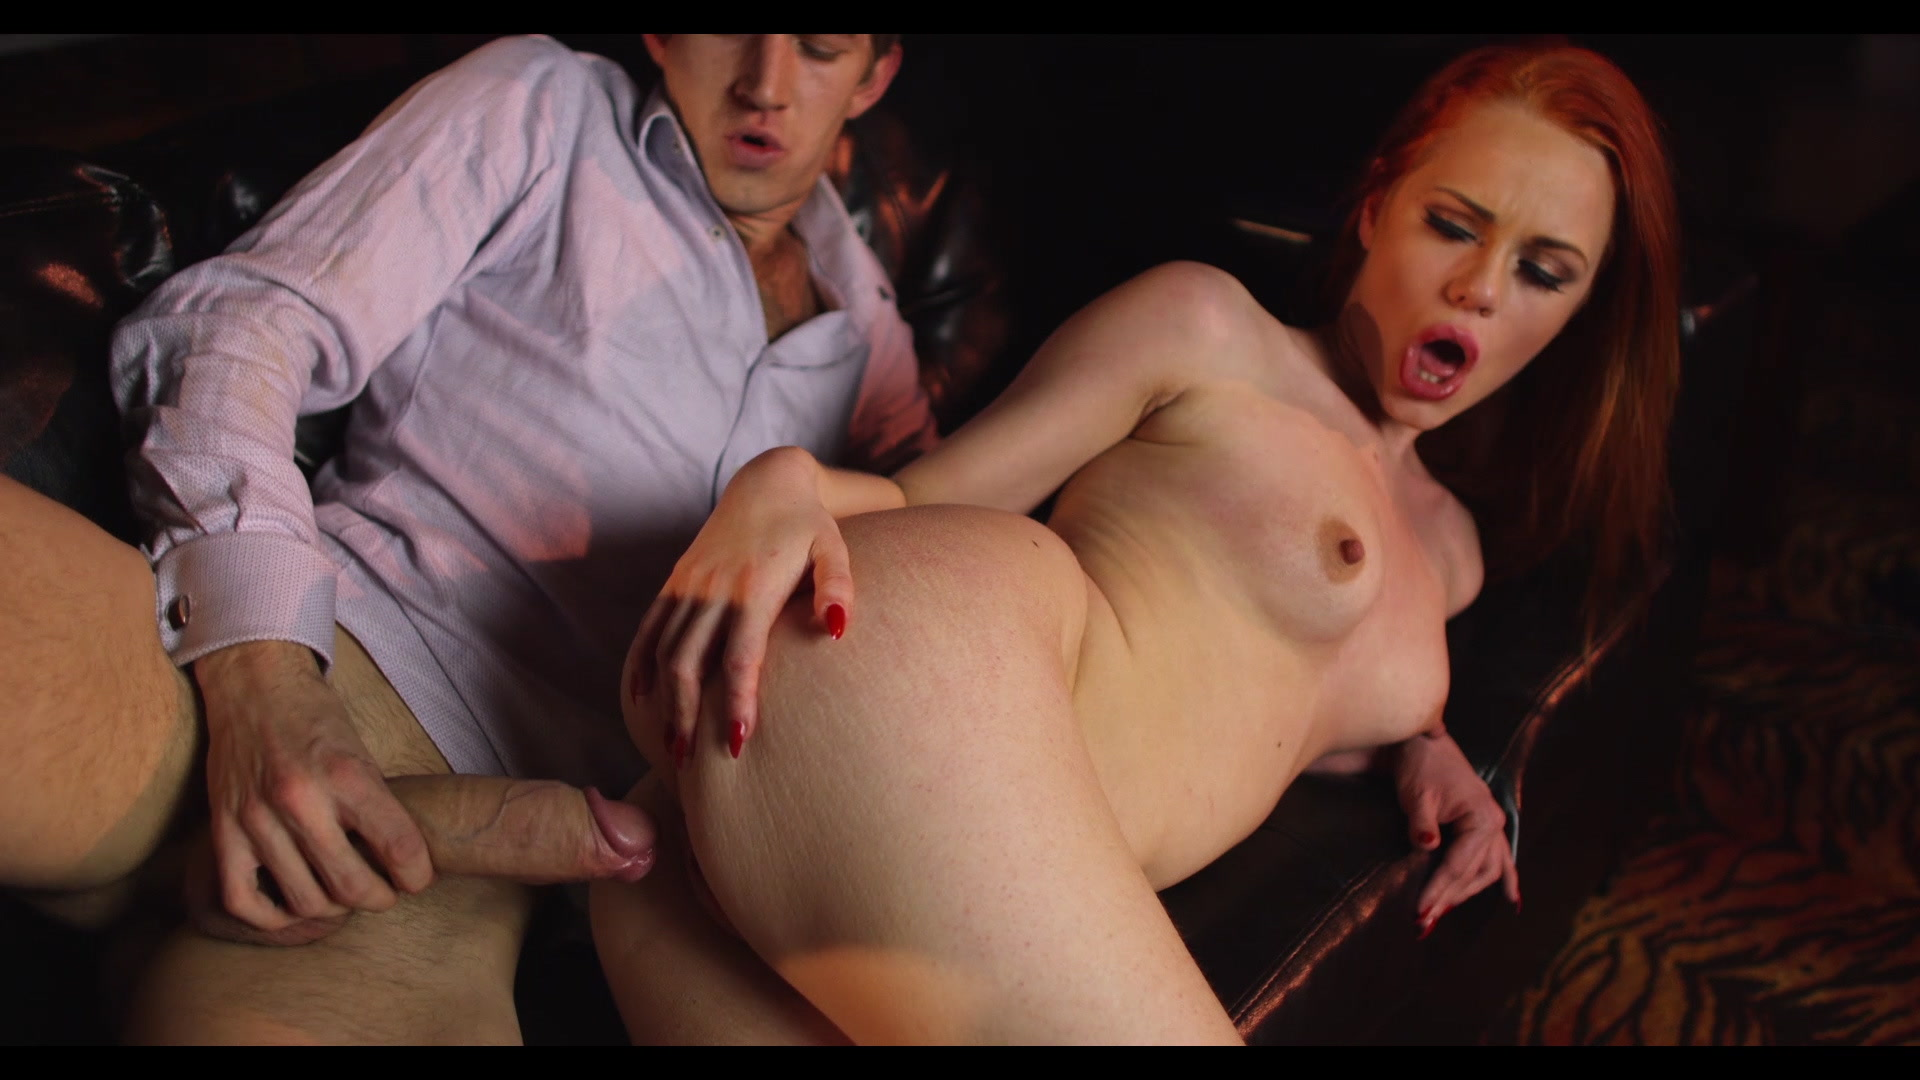 Scene with Ella Hughes - image 20 out of 20